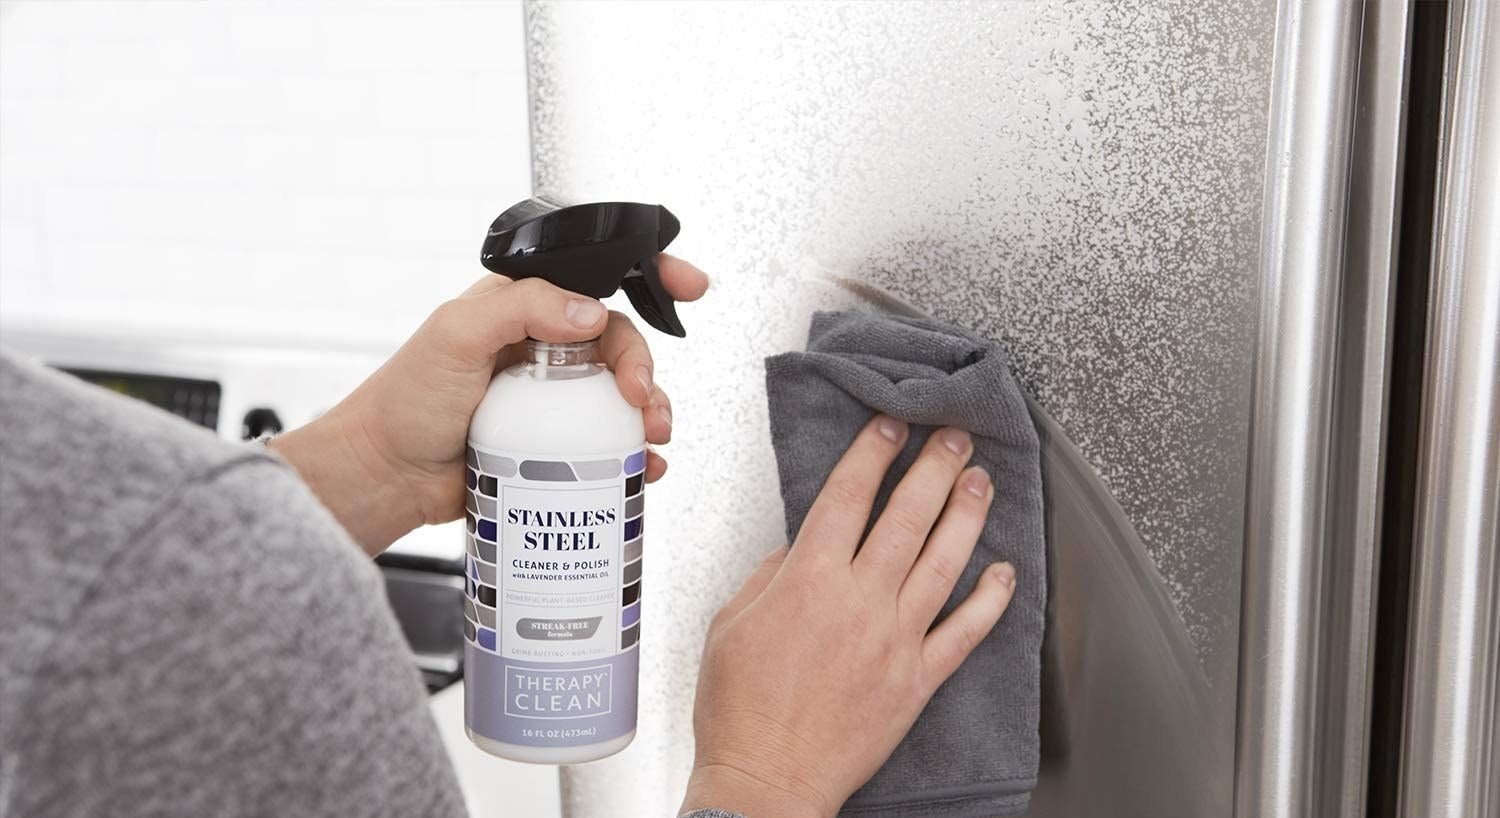 Hands spraying the white cleaner on a fridge, then wiping with a microfiber cloth